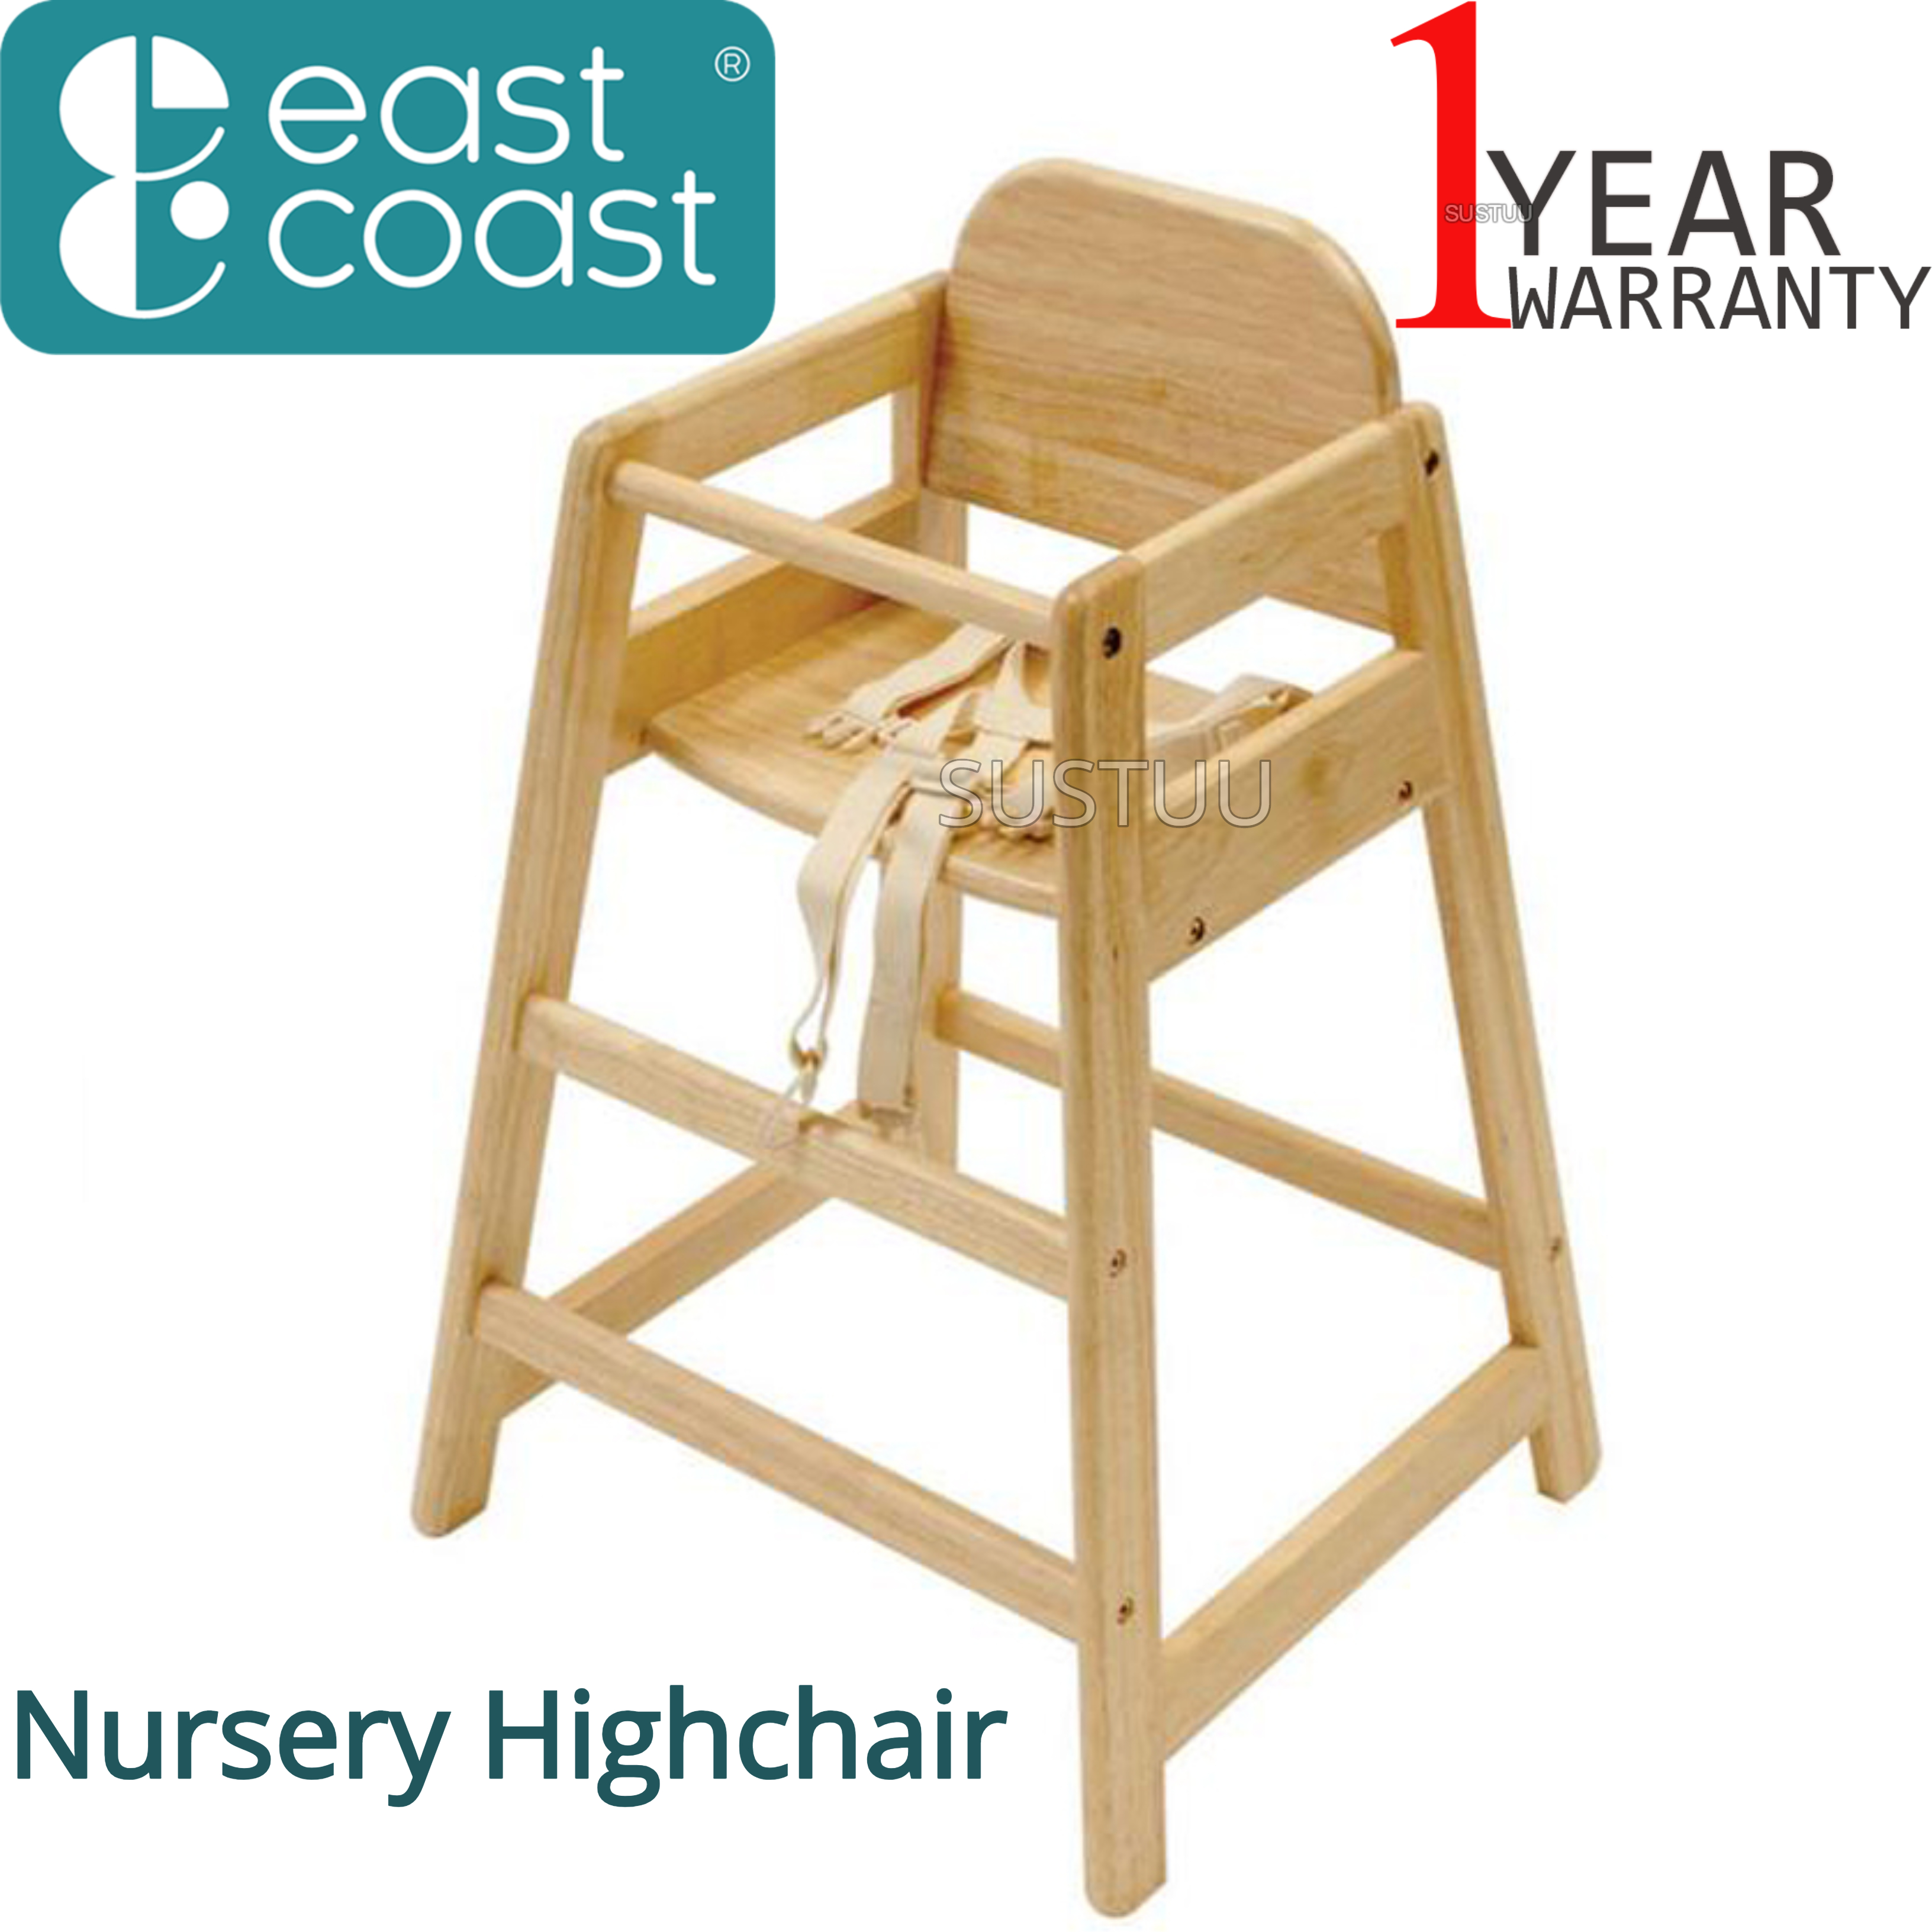 East Coast Nursery Café Natural Highchair | Kids Wooden Chair With Safety harness